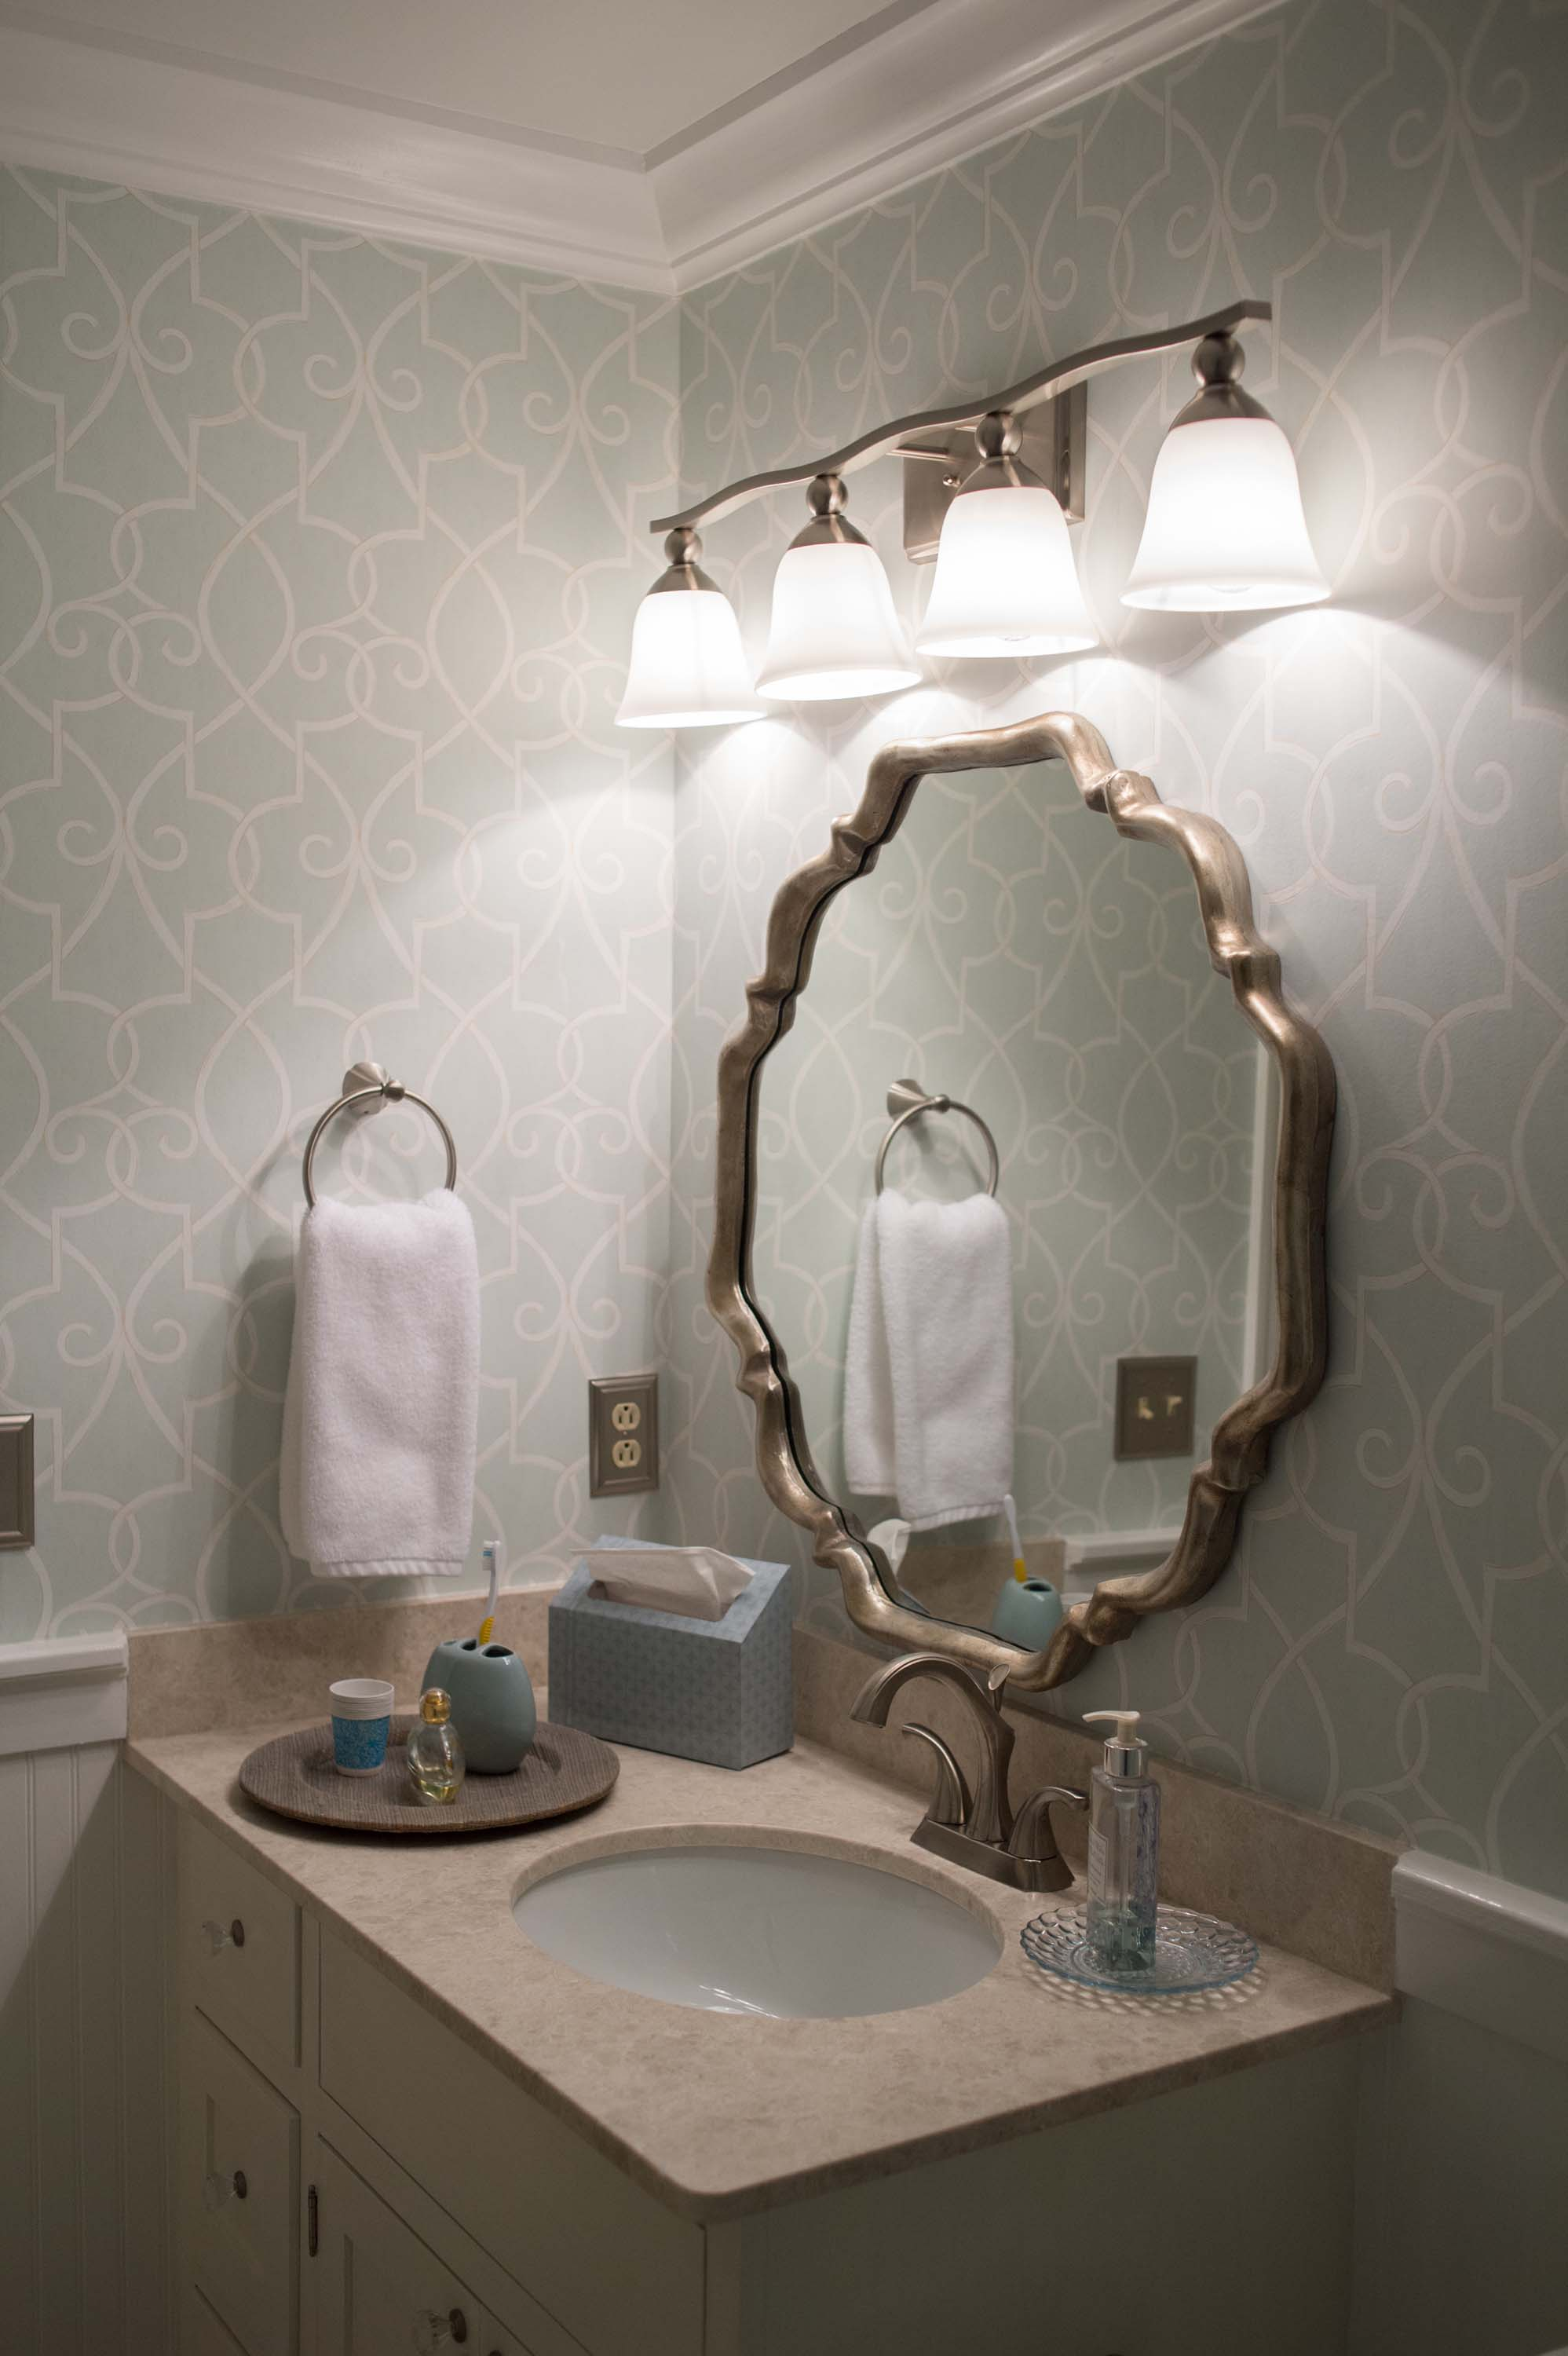 Guest Bathroom with Thibaut Wallpaper, Light Fixture and Mirror